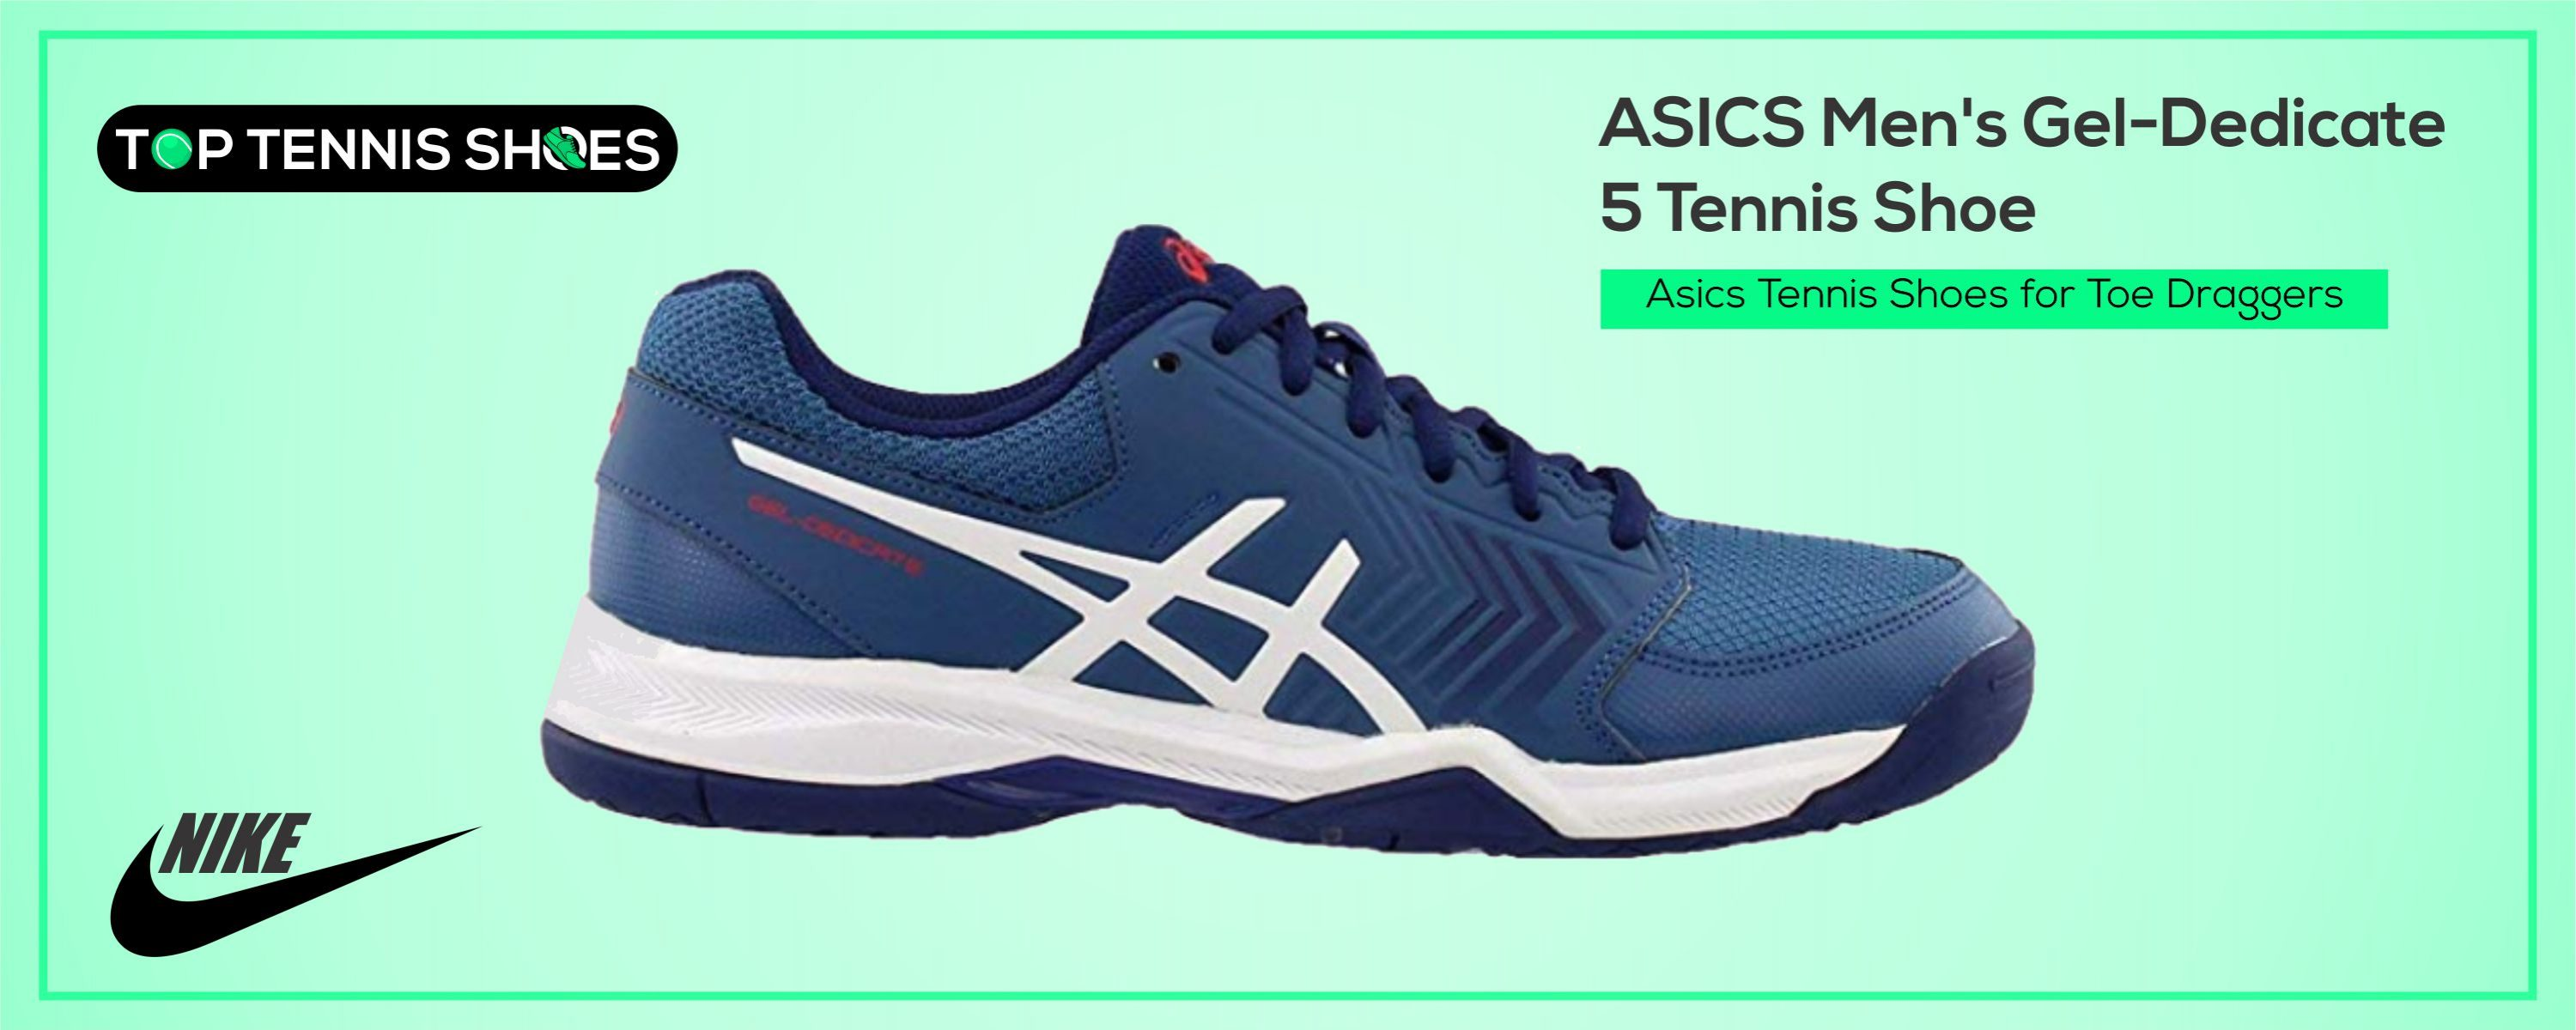 Asics Tennis Shoes for Toe Draggers